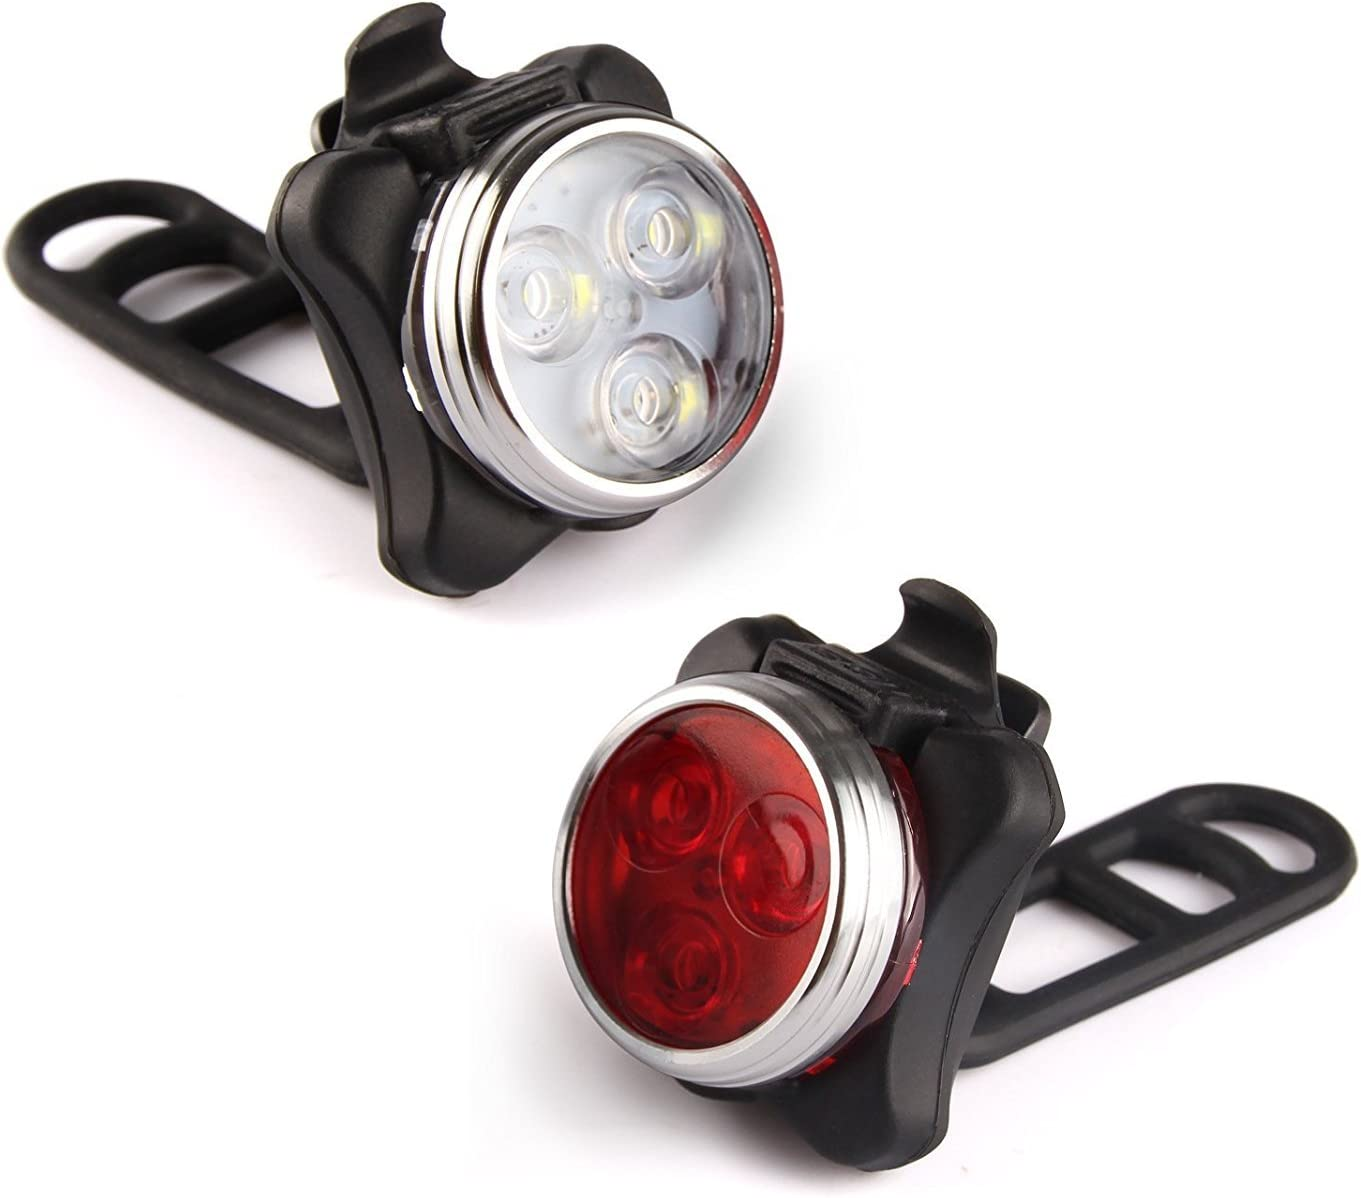 ESTIQ USB Rechargeable Safety Bike Light Set – Super Bright Front Headlight and Free Rear LED Bicycle Light – 650mah Lithium Battery – 4 Light Mode Options – Water Resistant IPX4, 2 Pack